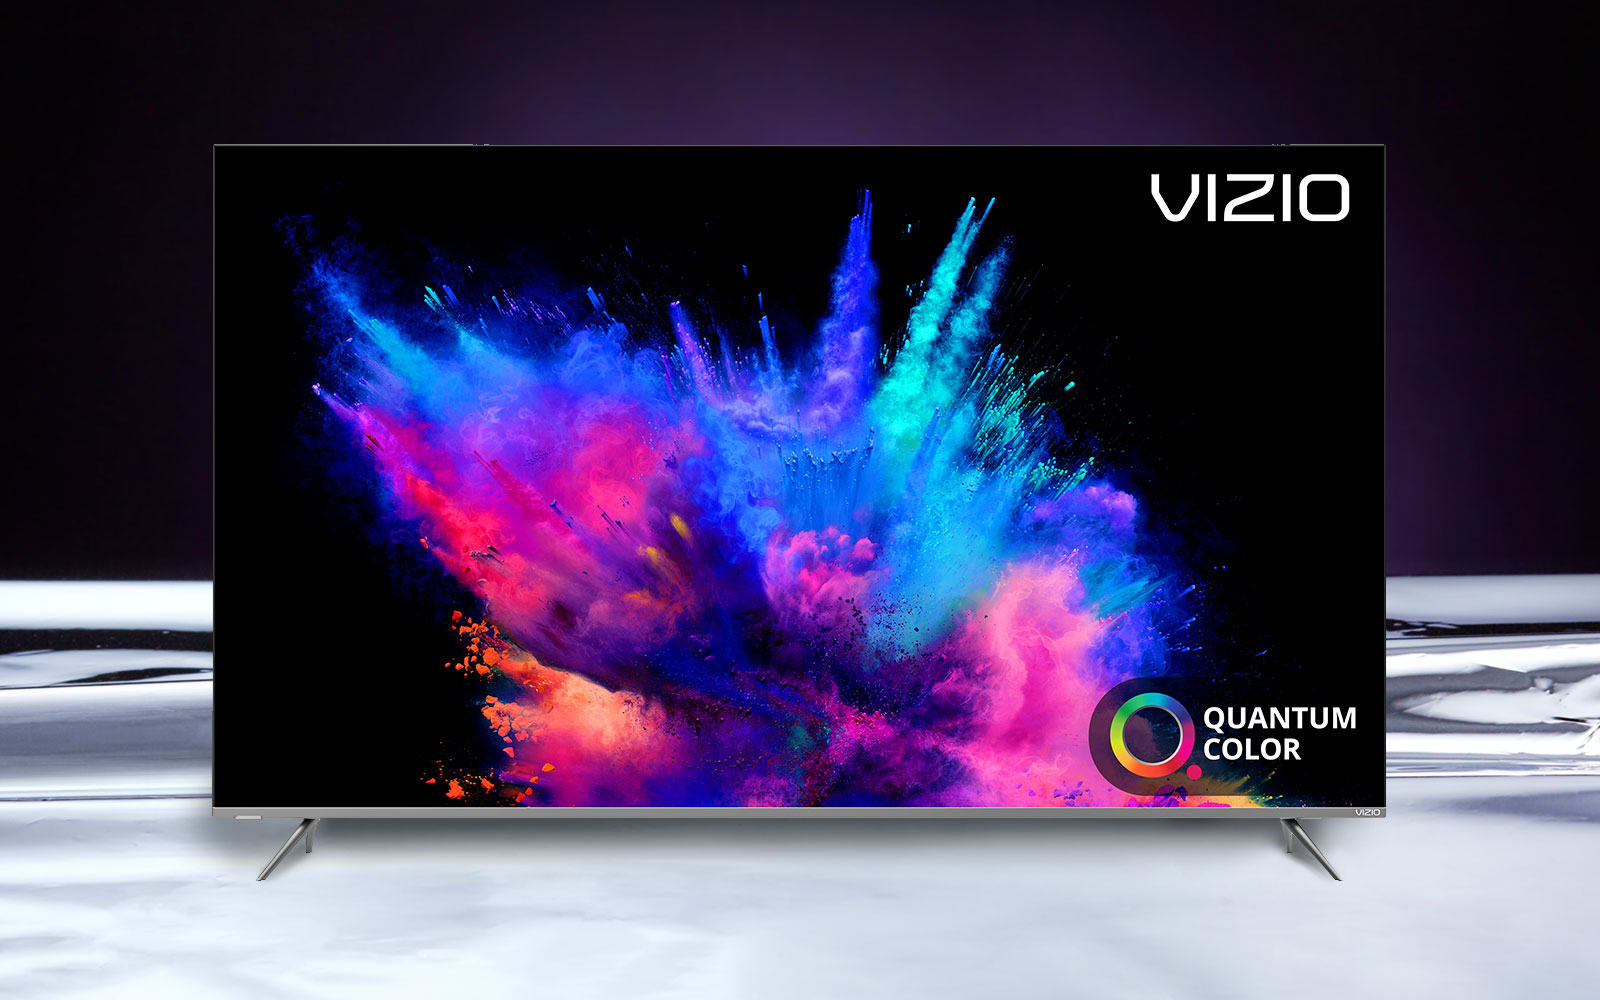 Back to school: The best TVs for a dorm (and what to stream on them)